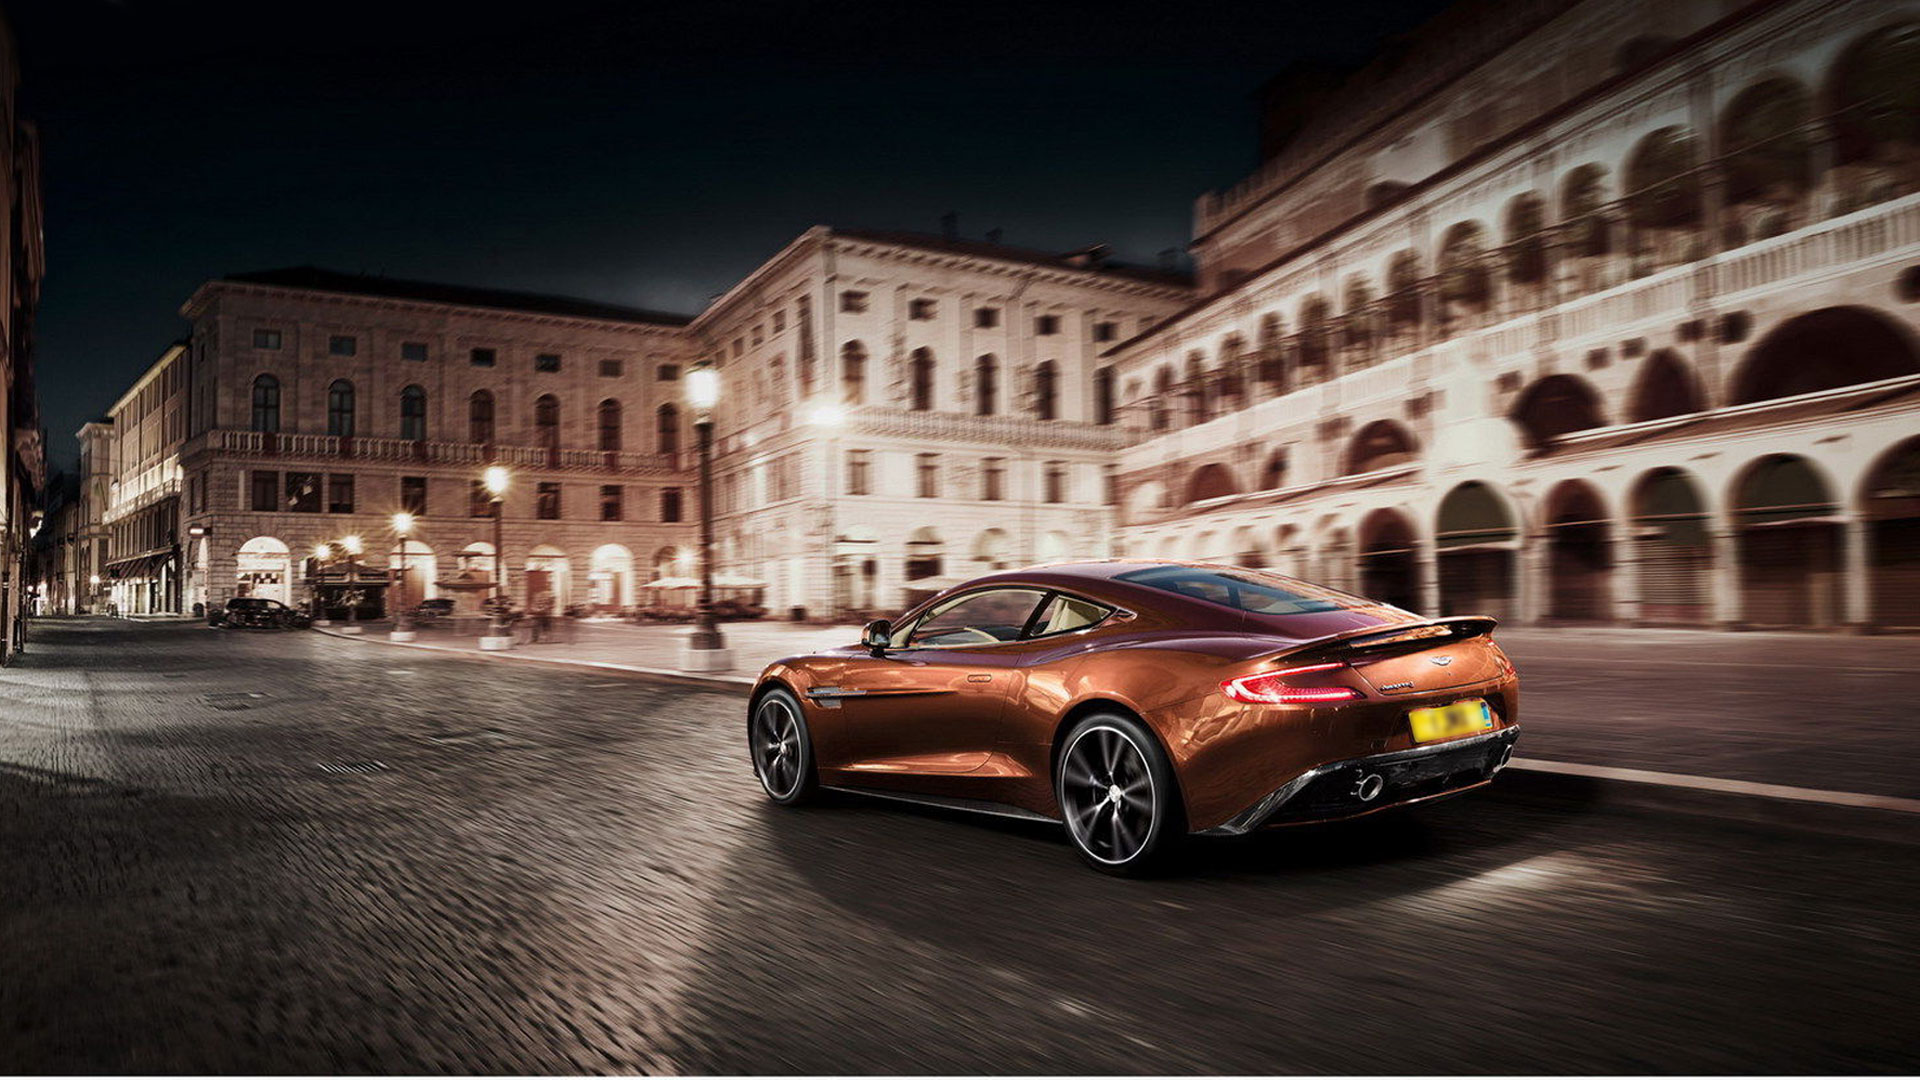 Aston martin wallpaper   SF Wallpaper 1920x1080